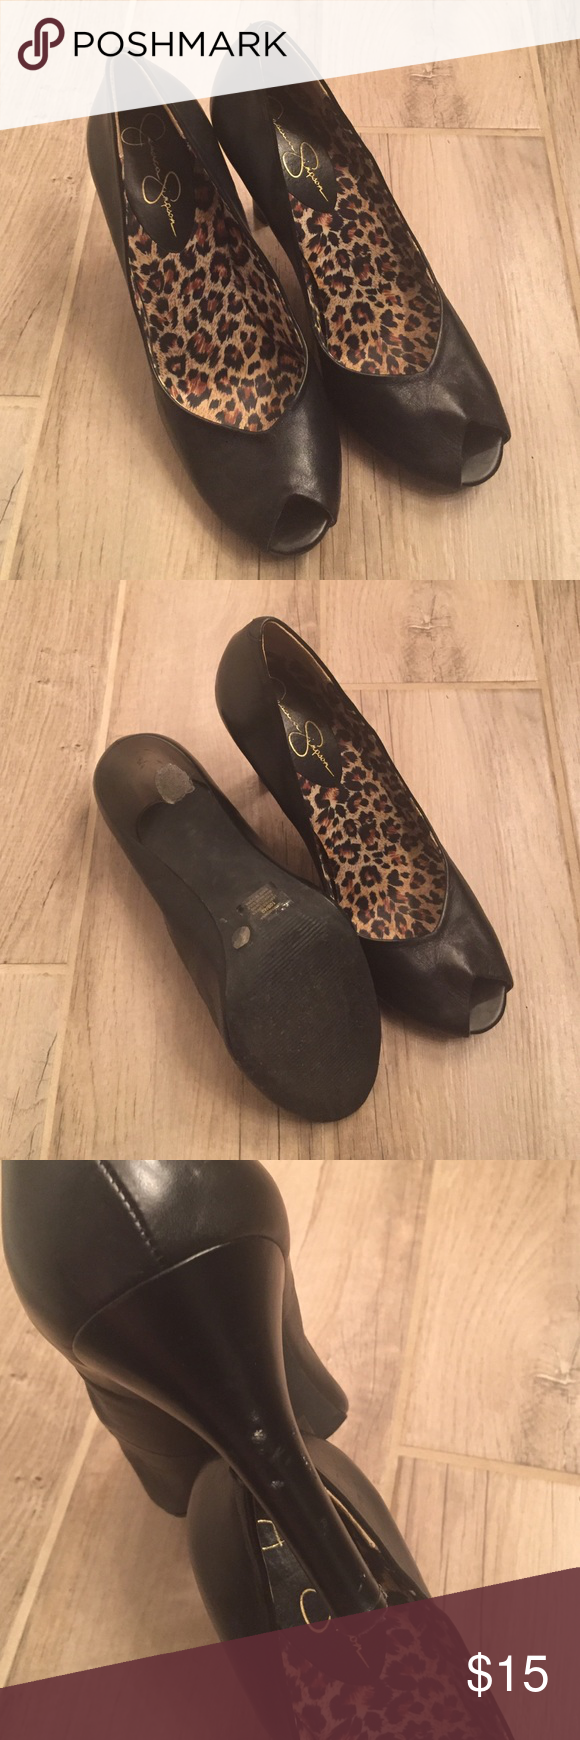 Cute Jessica Simpson peep toe heels! Worn once and then put in a box with other shoes so there are some slight dings in the heels (see picture). Other than that they're in great condition! Super cute!!! Jessica Simpson Shoes Heels